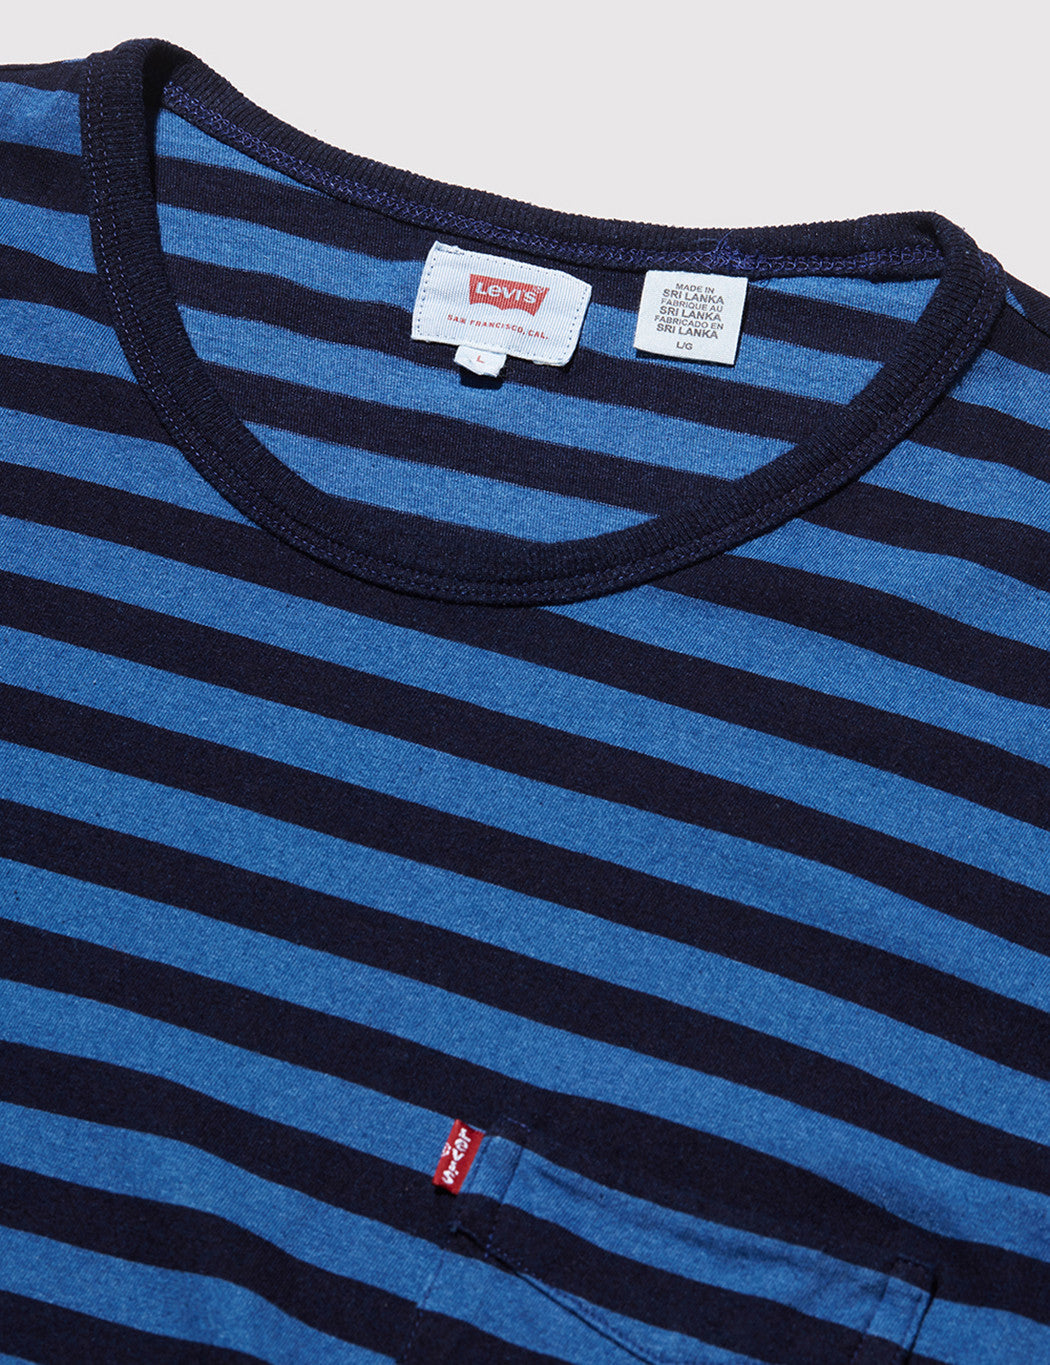 Levis Sunset Pocket T-shirt (Stripe) - Indigo/Blue